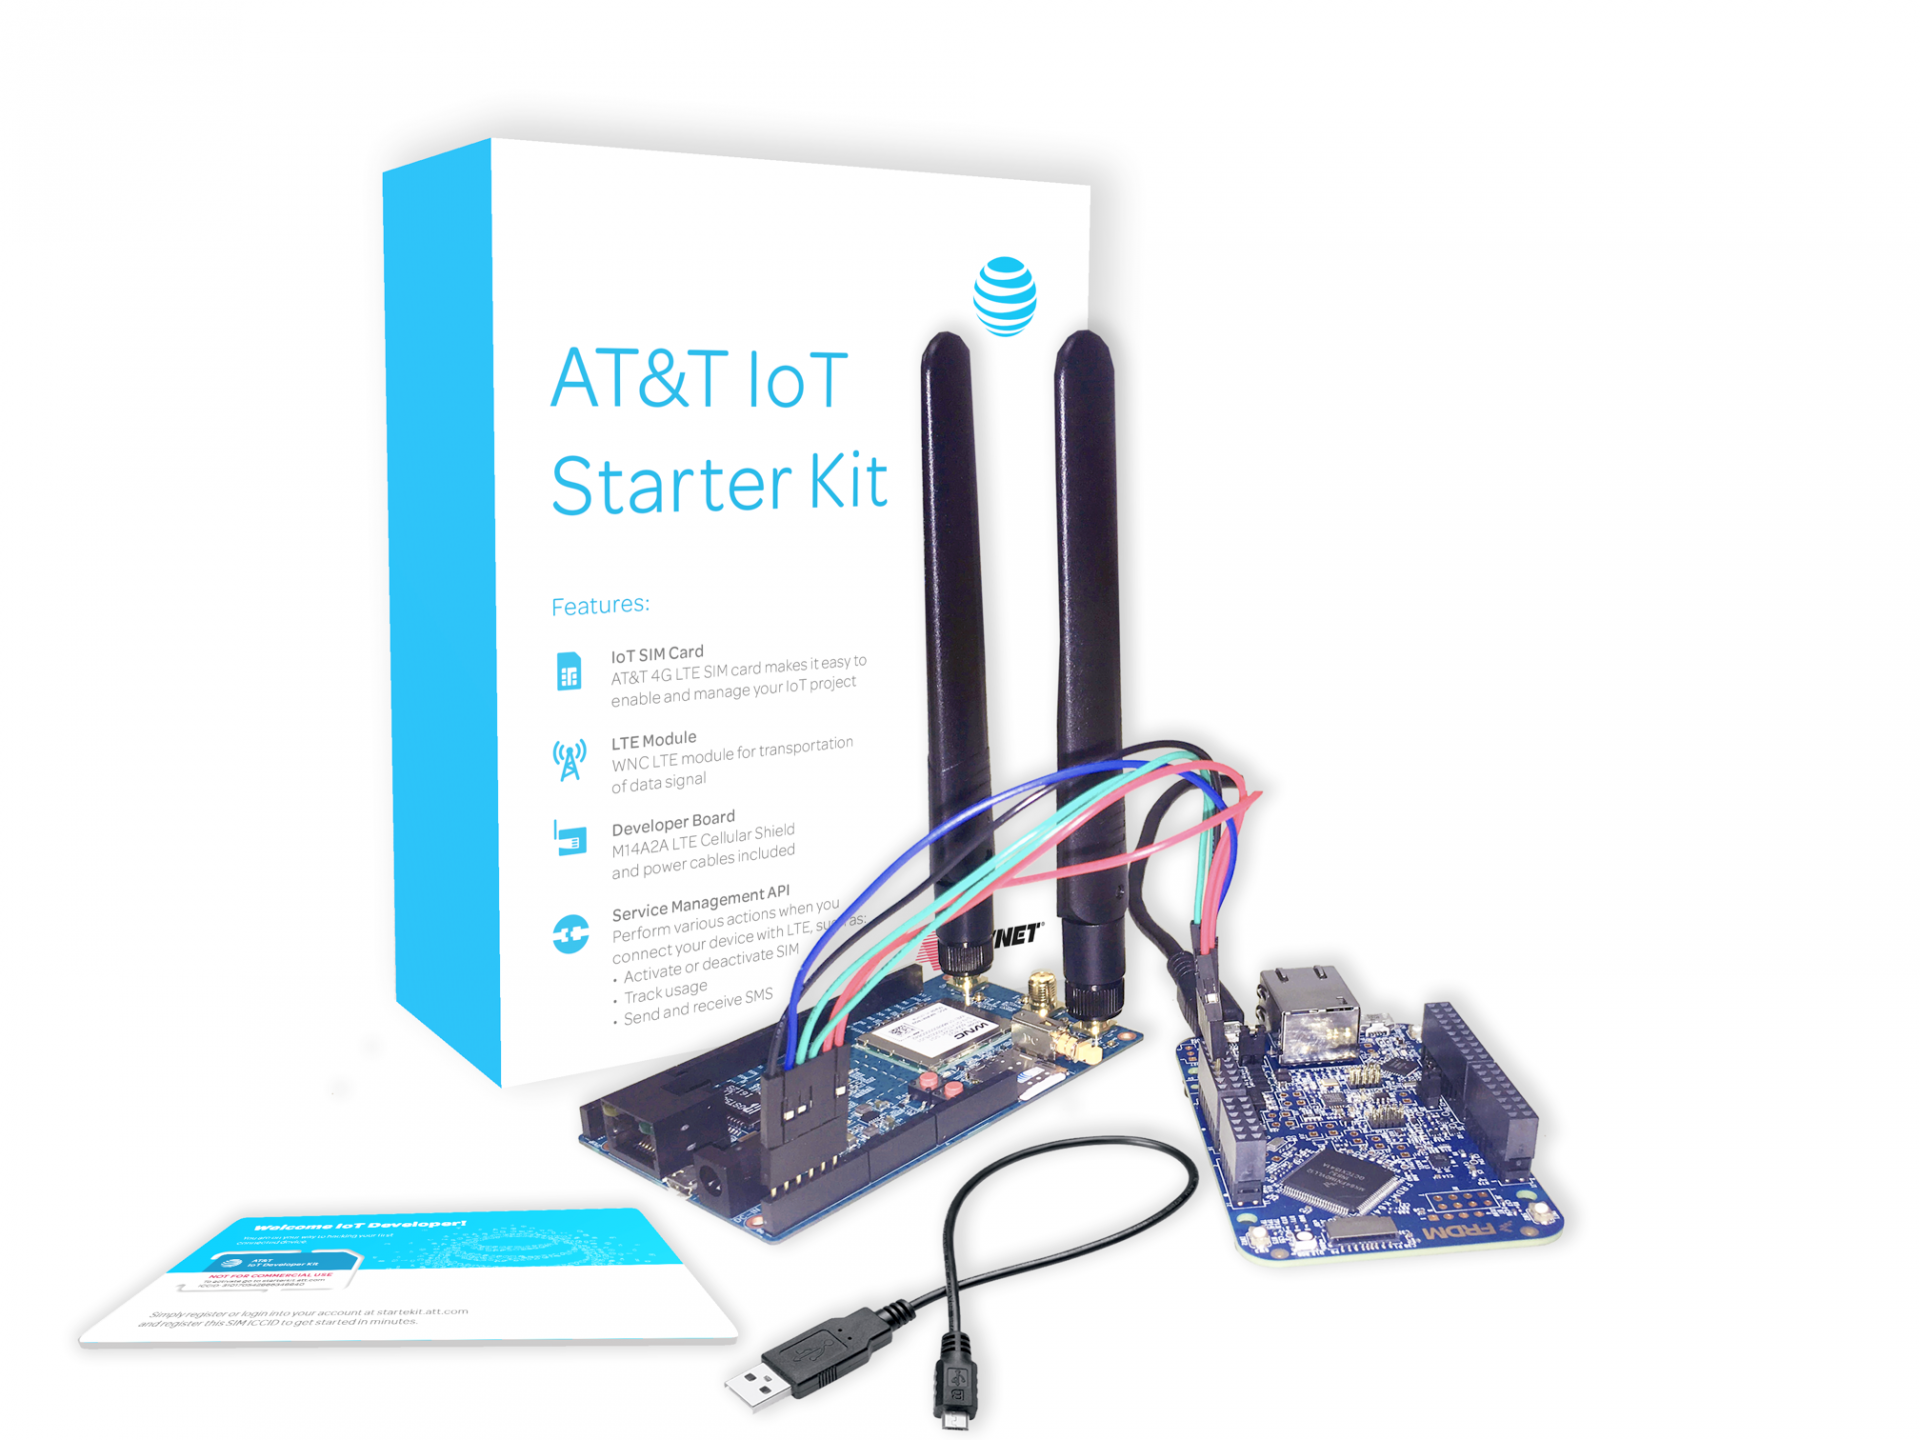 AT&T Pushes For IoT With IBM Partnership And Starter Kit